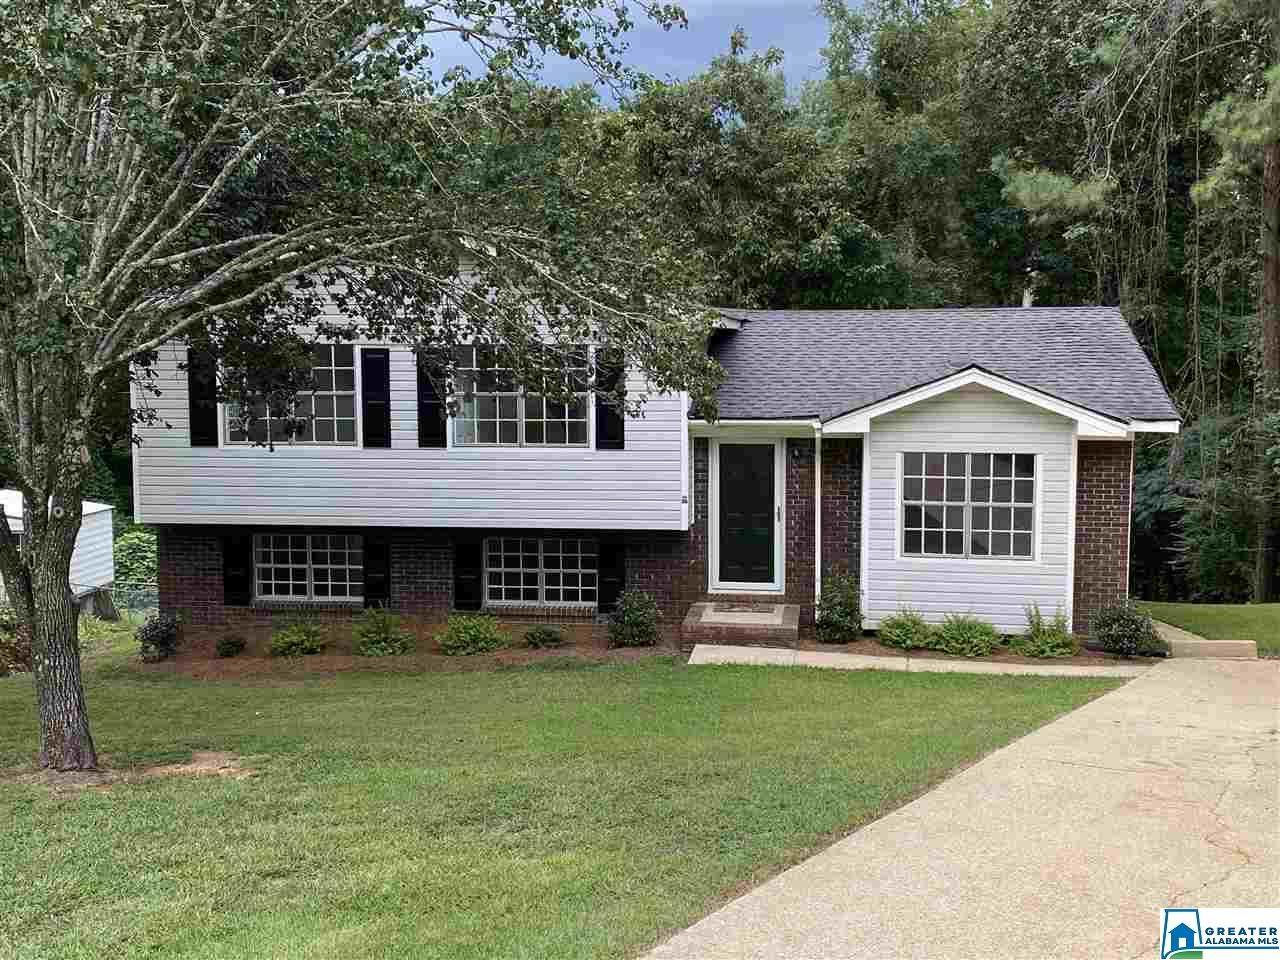 5205 Mike Dr - Photo 1